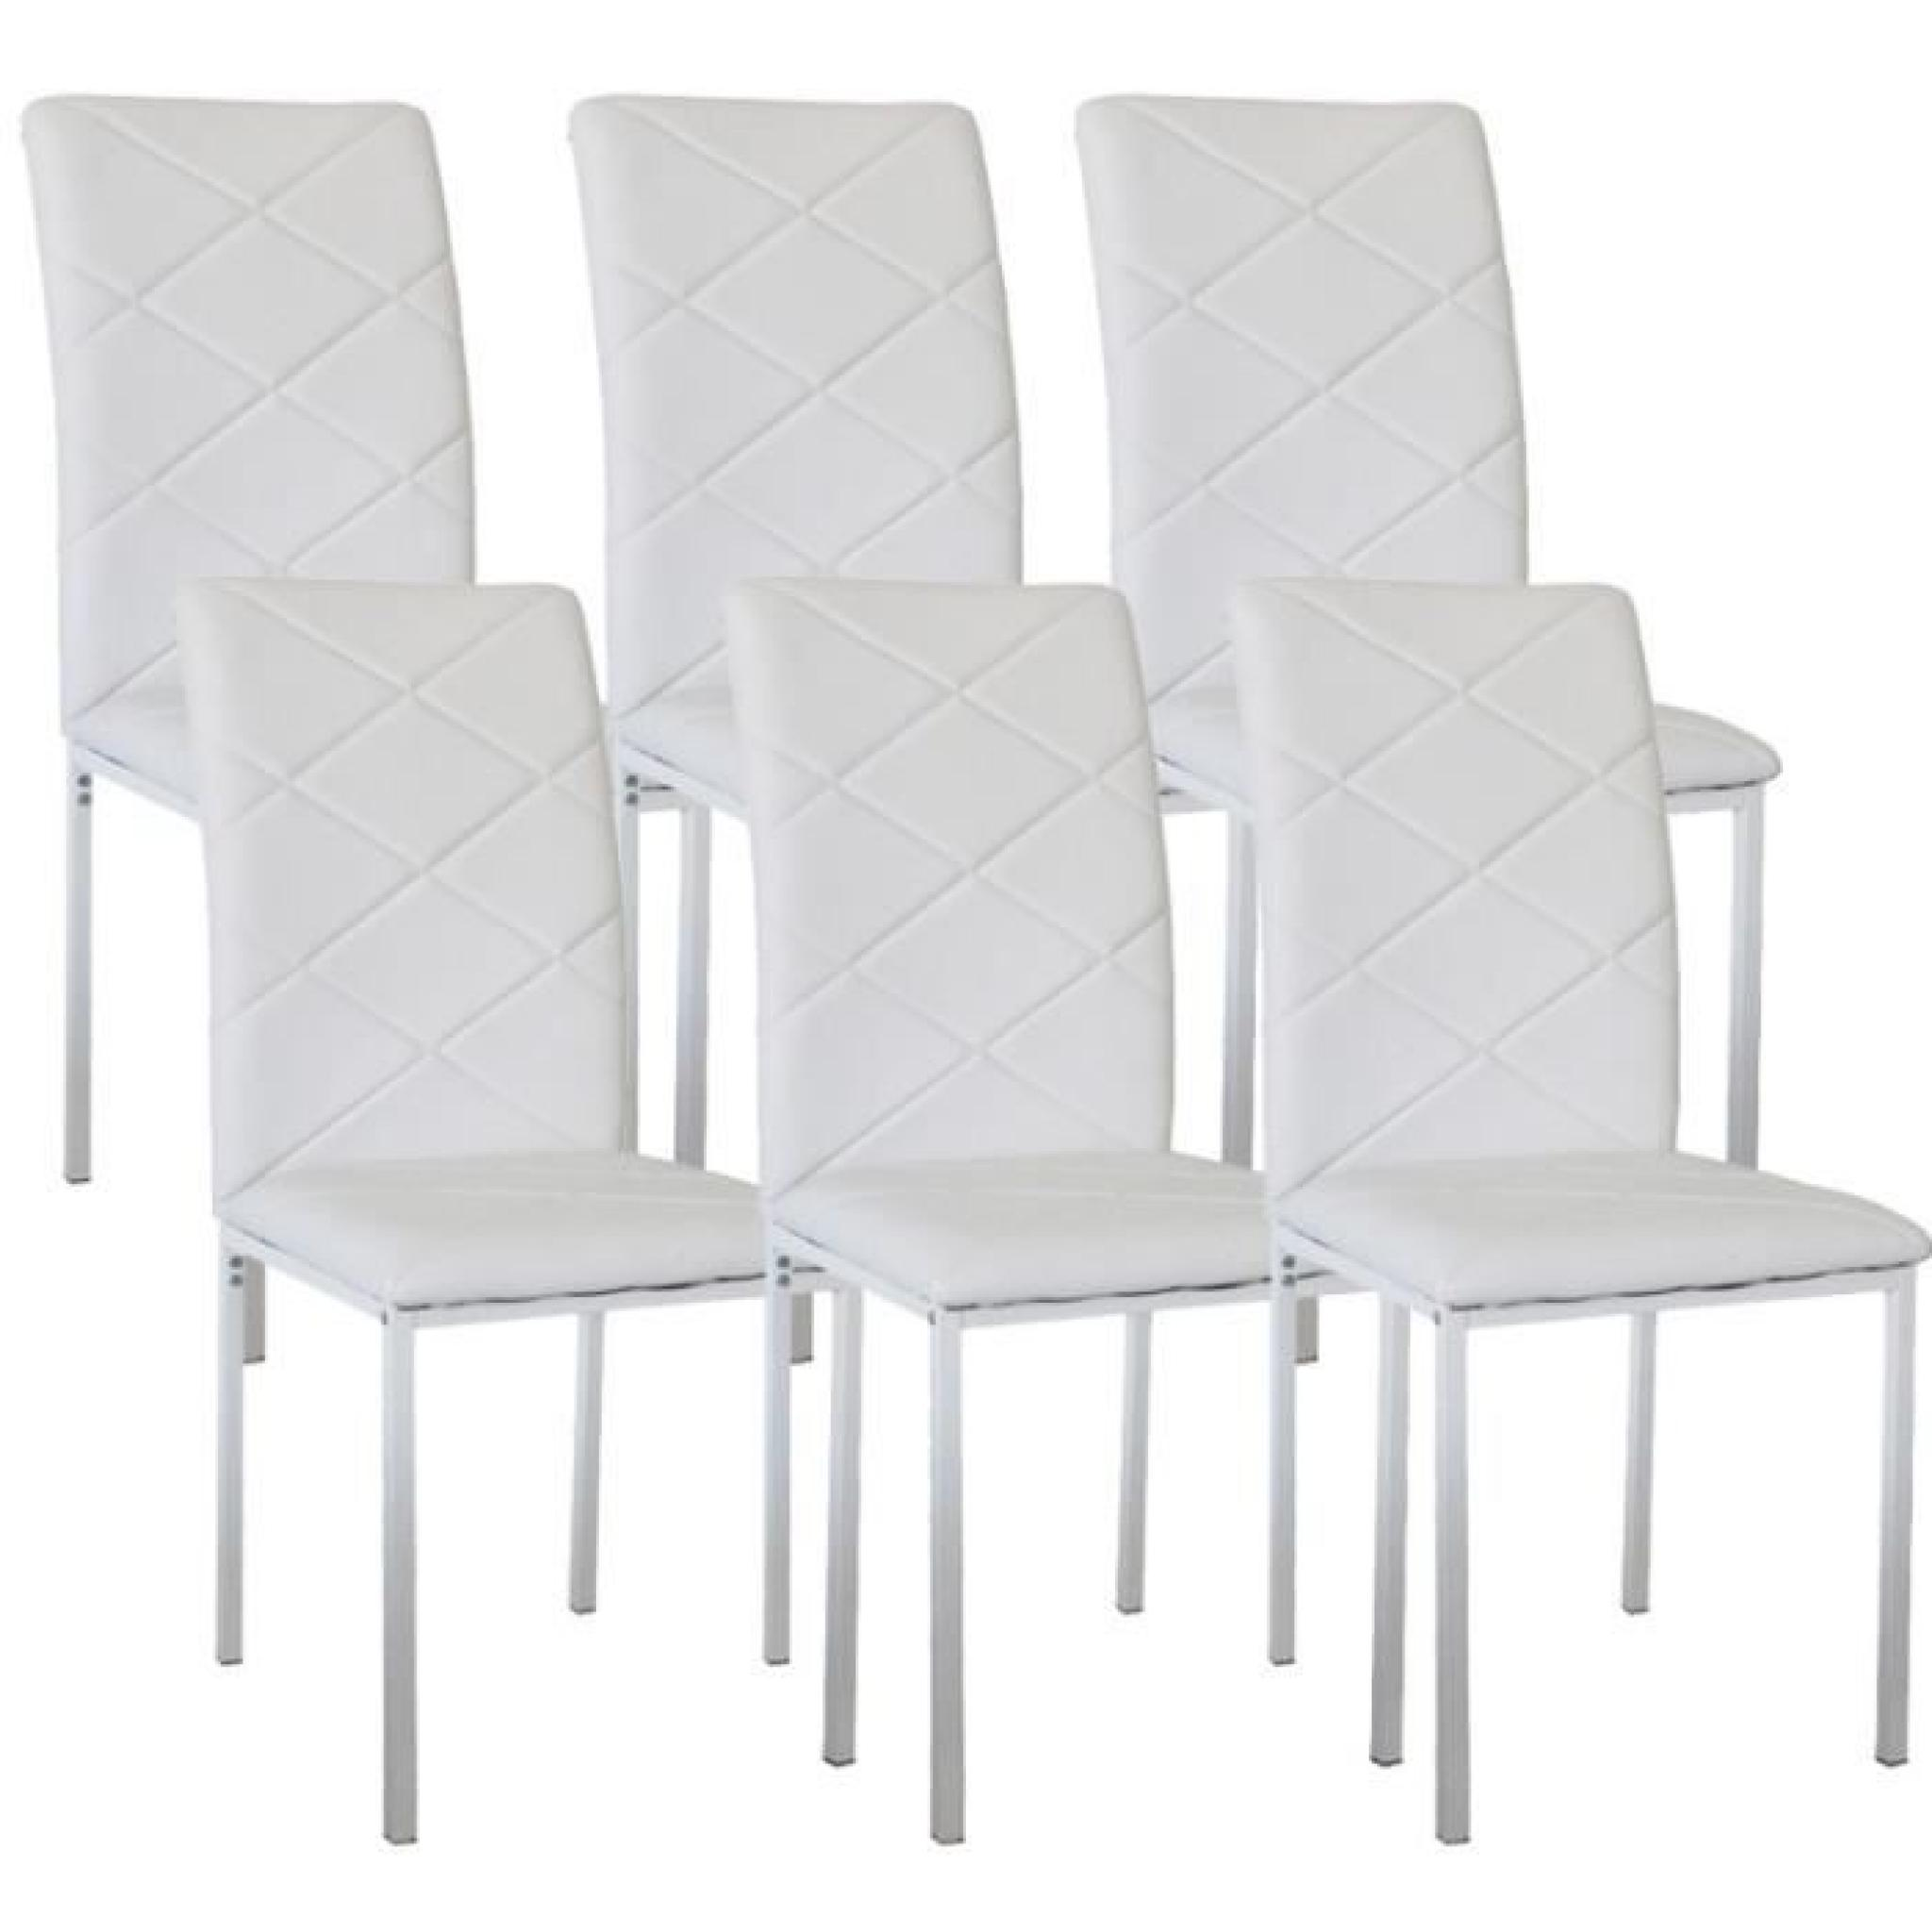 lot de 6 chaises design blanche ray achat vente chaise salle a manger pas cher couleur et. Black Bedroom Furniture Sets. Home Design Ideas